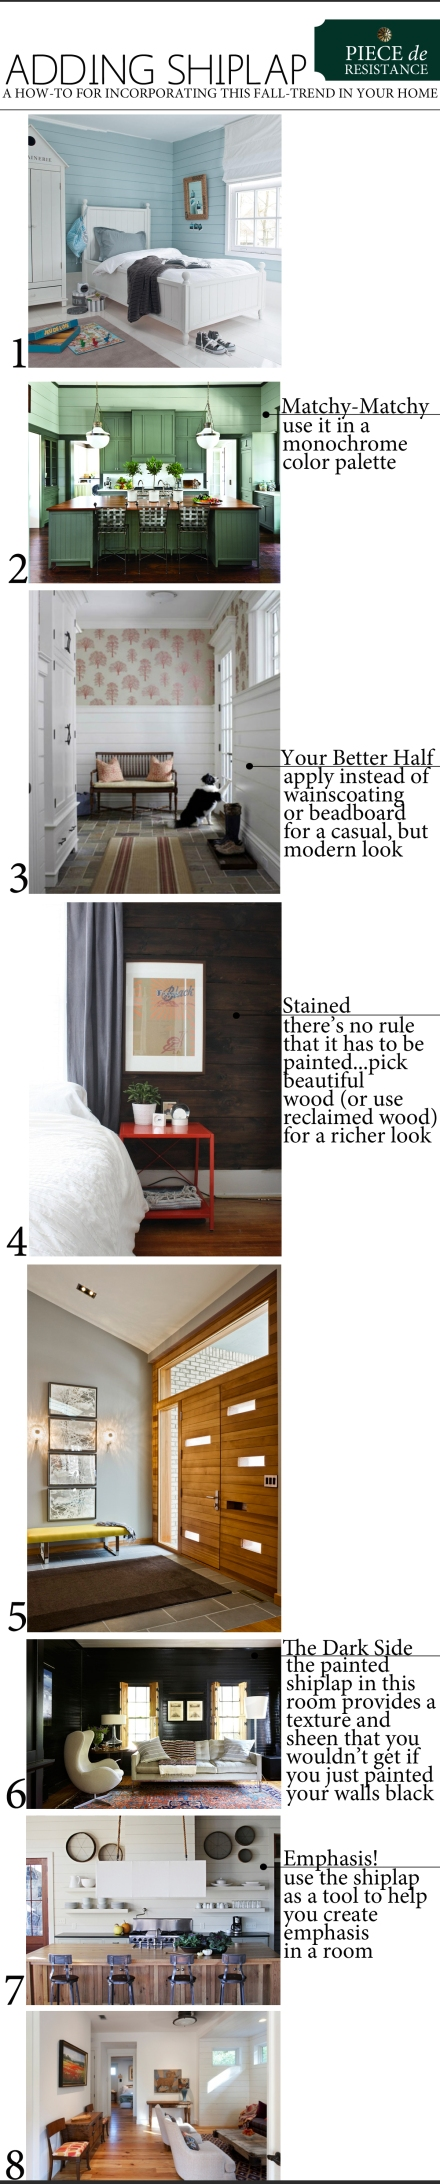 how-to-use-shiplap copy